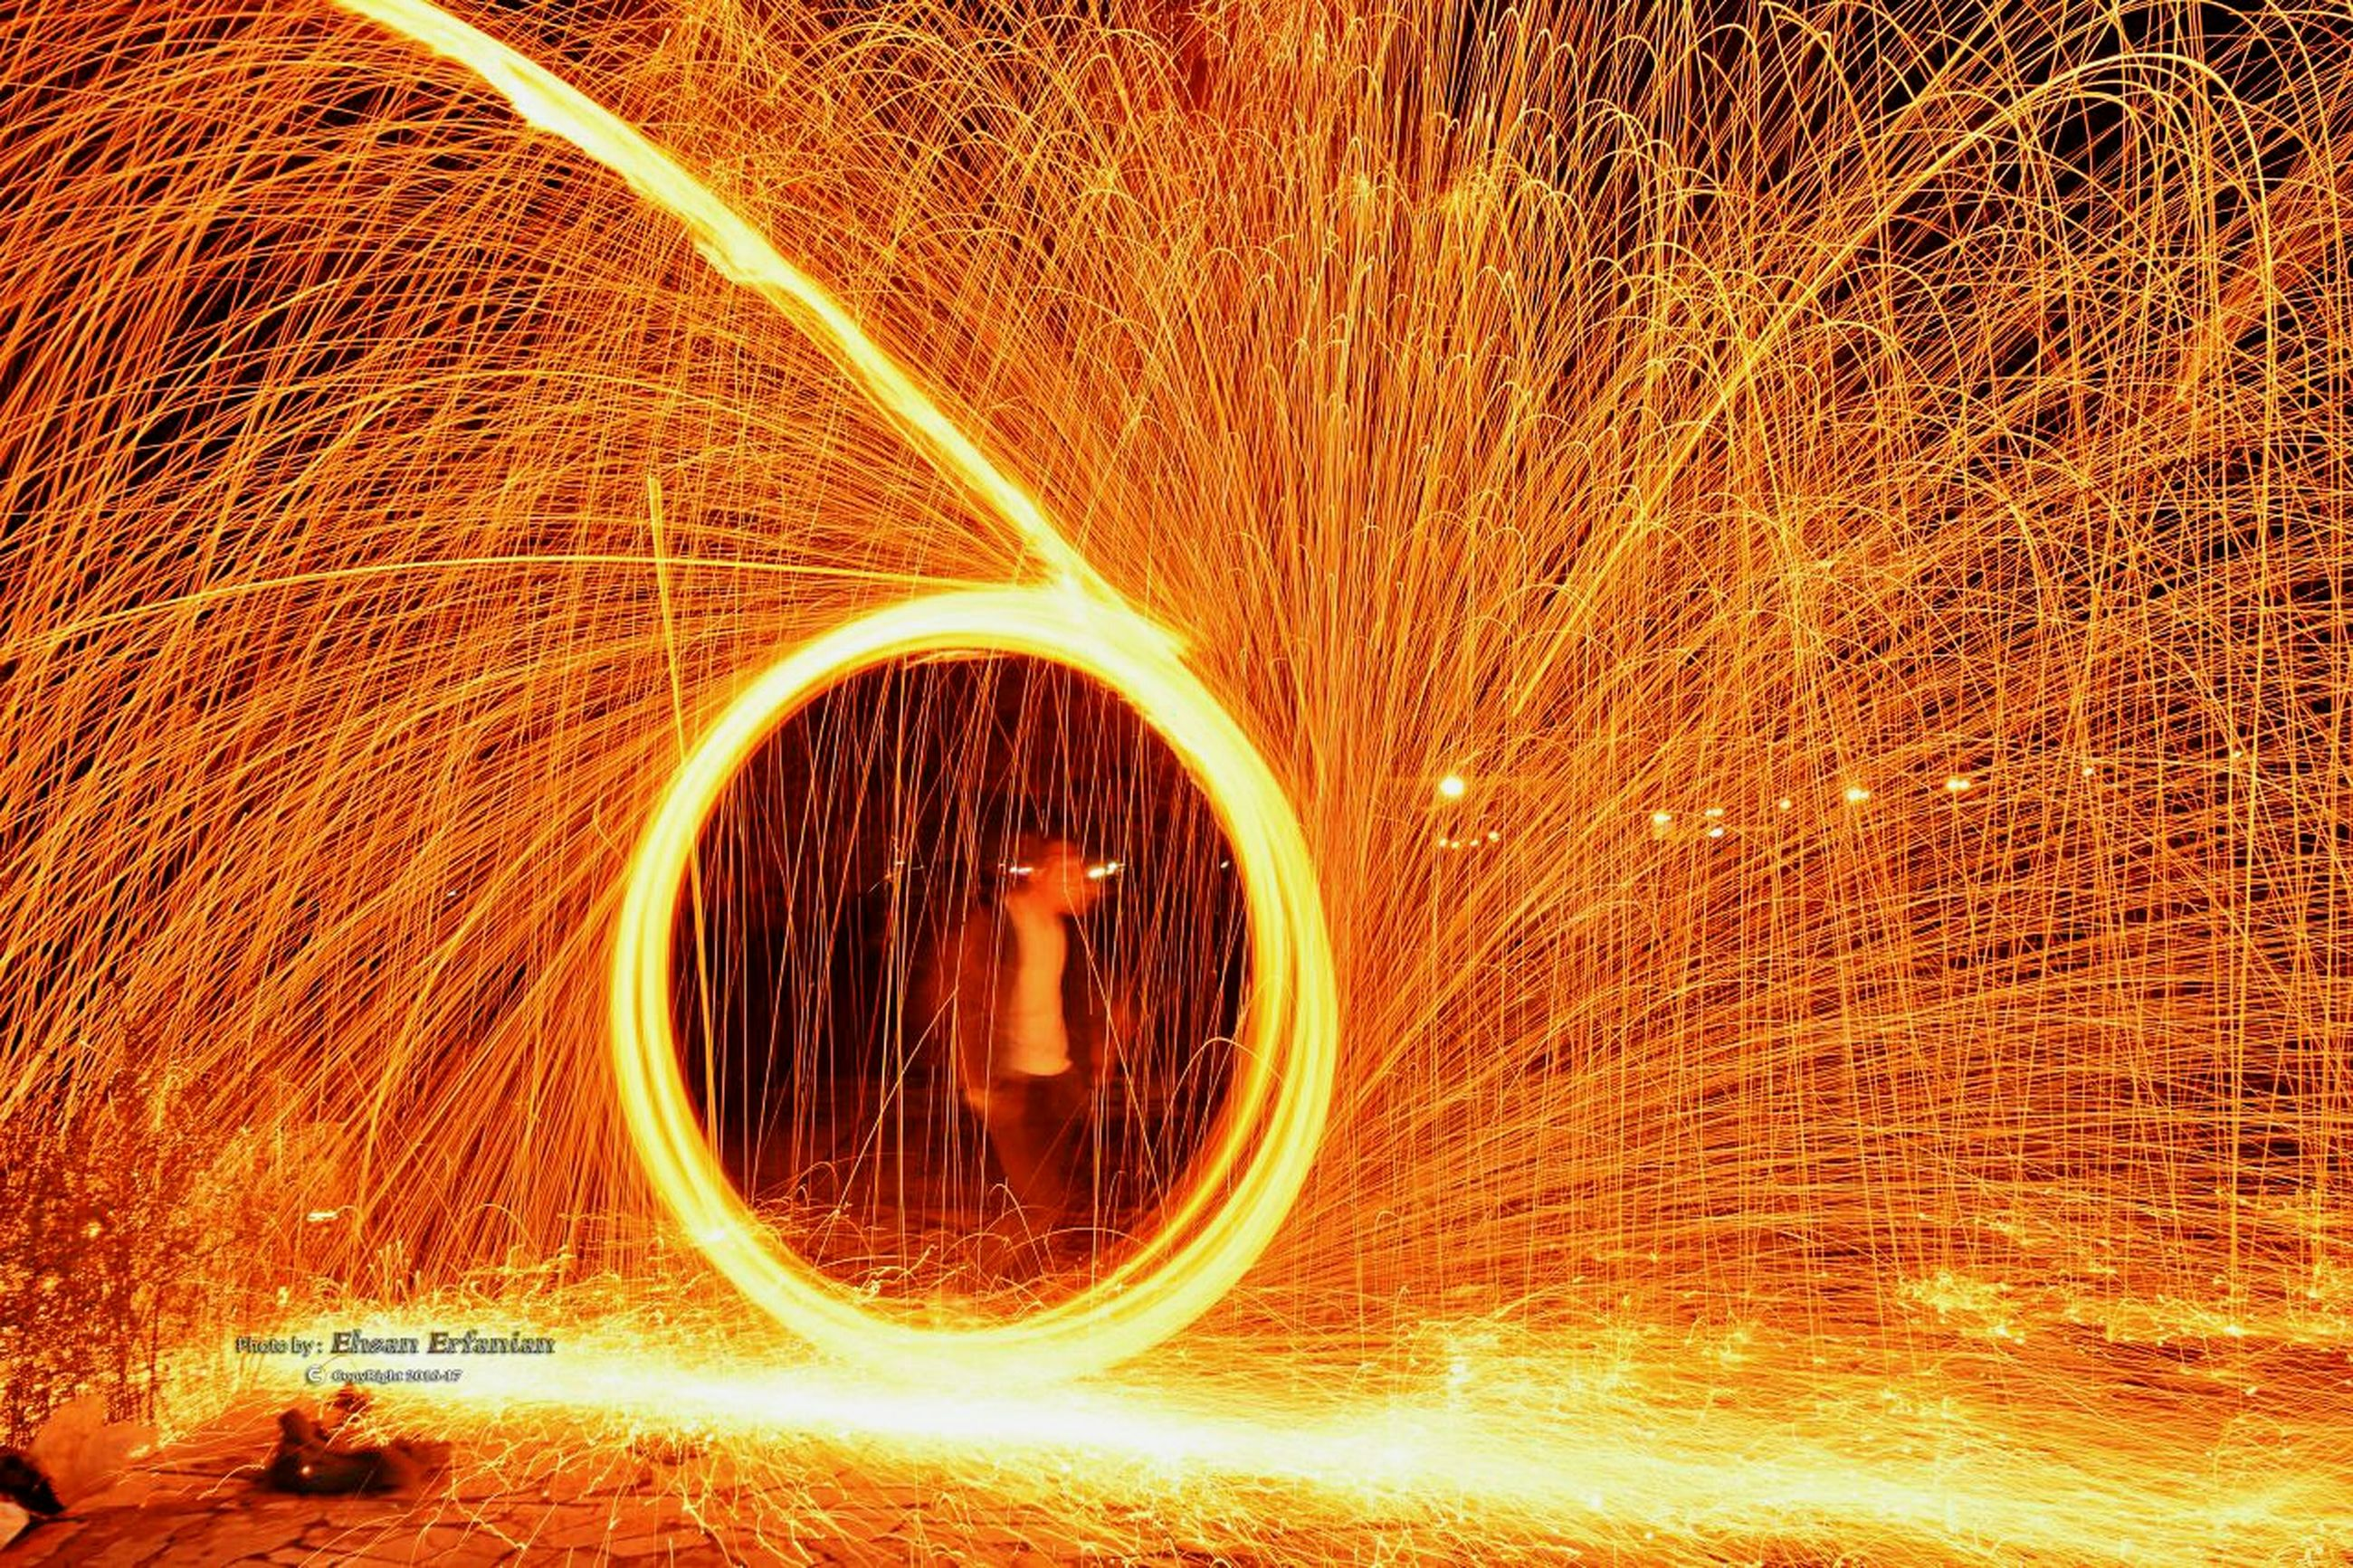 circle, close-up, motion, illuminated, orange color, abstract, long exposure, light painting, no people, blurred motion, multi colored, burning, glowing, outdoors, yellow, pattern, bicycle, part of, night, light trail